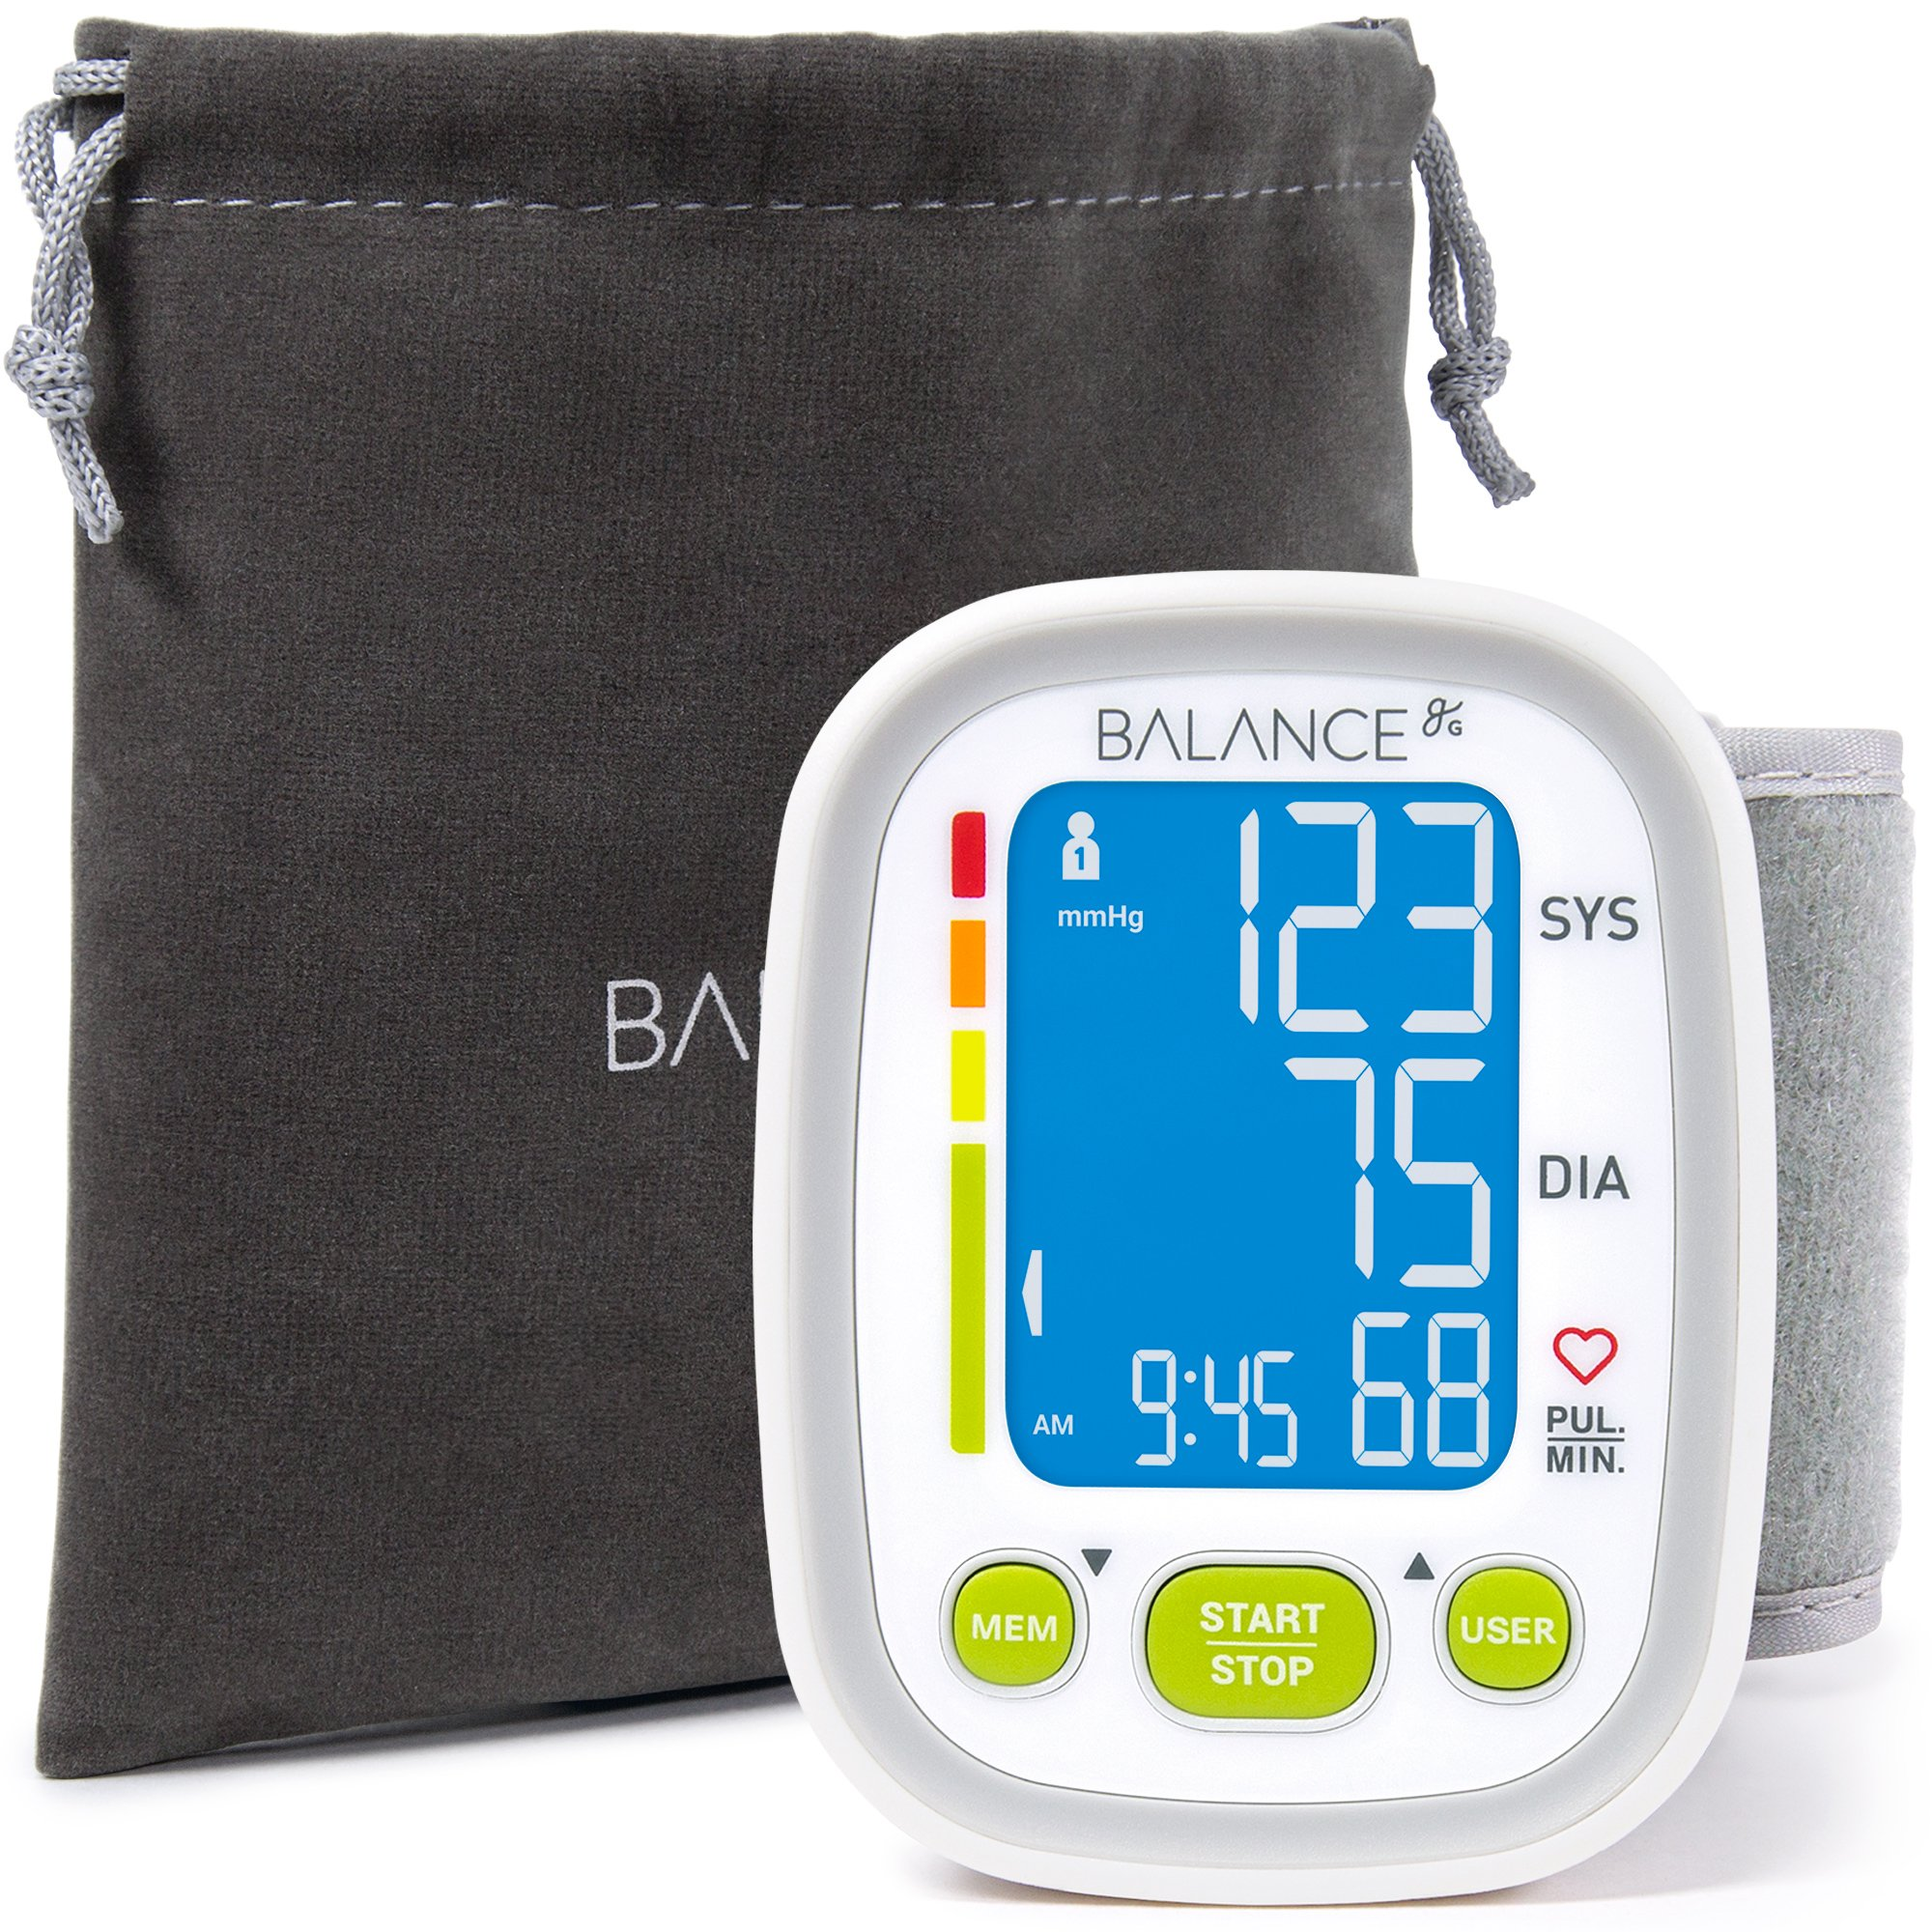 Balance Wrist Blood Pressure Monitor, (2018 Update), Free App for Tracking, NOT Bluetooth or WiFi, and 2-Year Warranty